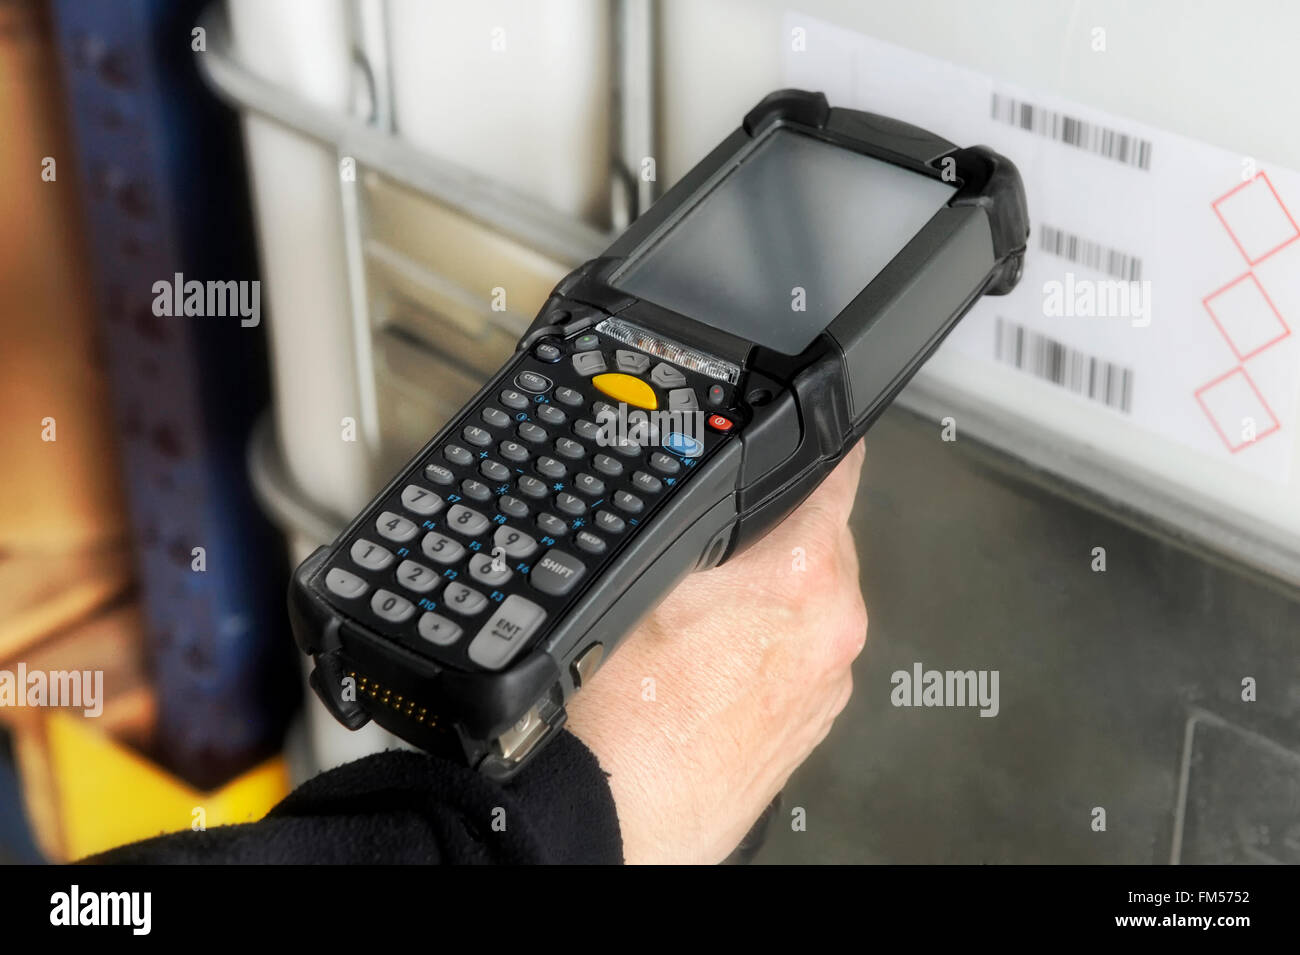 Person scanning a barcode with a handheld electronic scanner - Stock Image